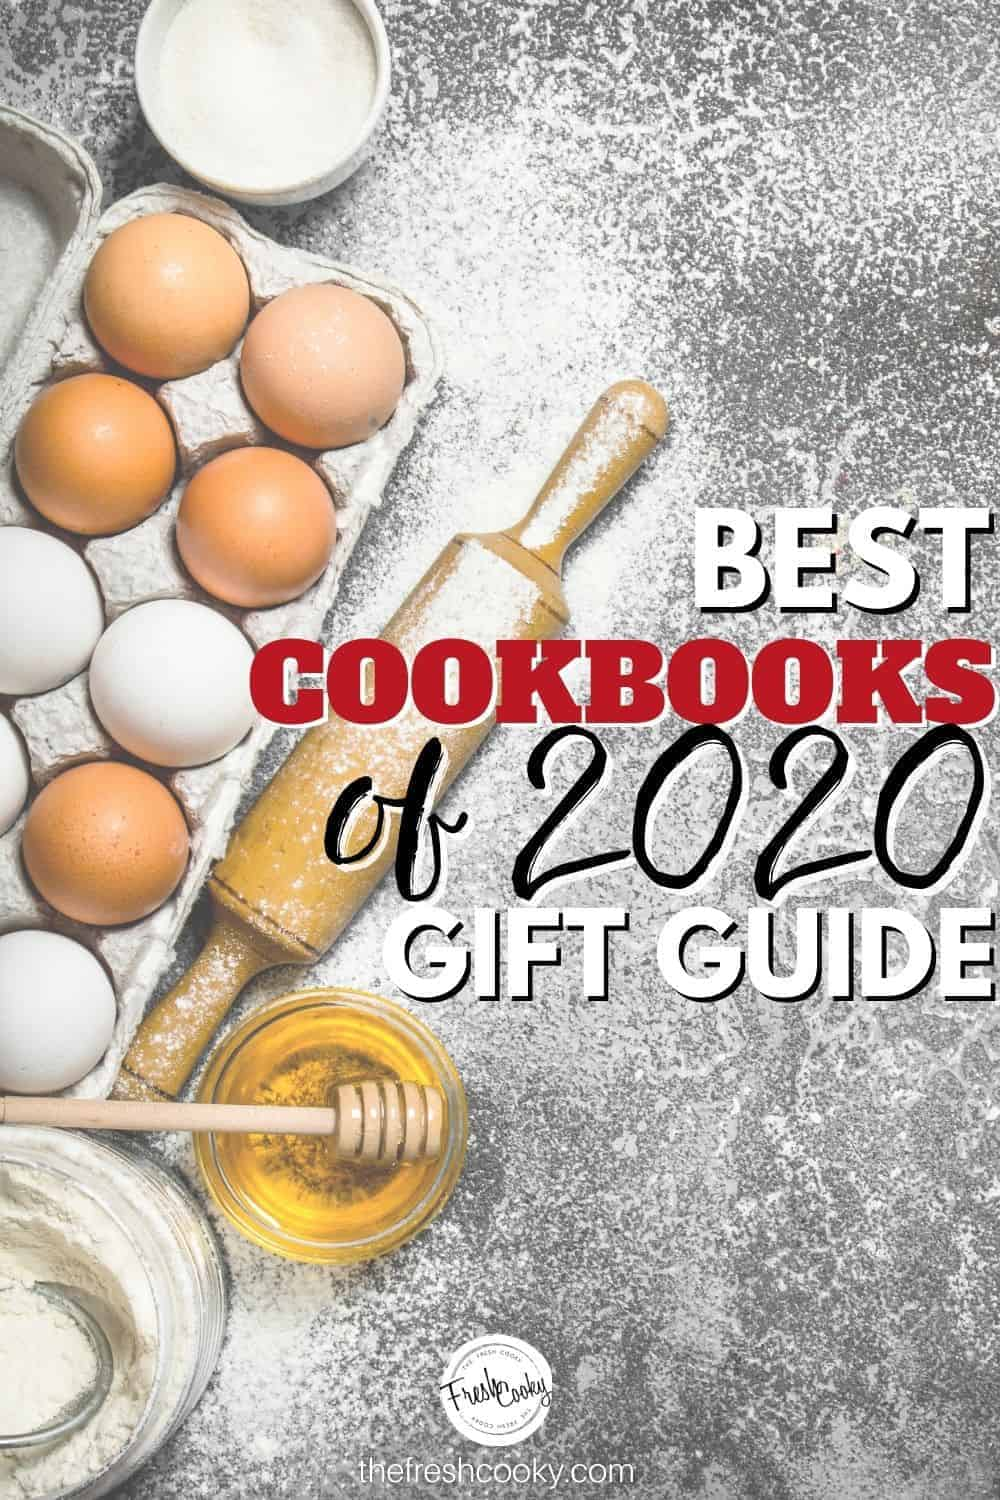 A collection of our favorite cookbooks for 2020, the best cookbooks for beginners, intermediates and experts. Best cookbook gift guide. #thefreshcooky #giftguides #bestcookbooks via @thefreshcooky